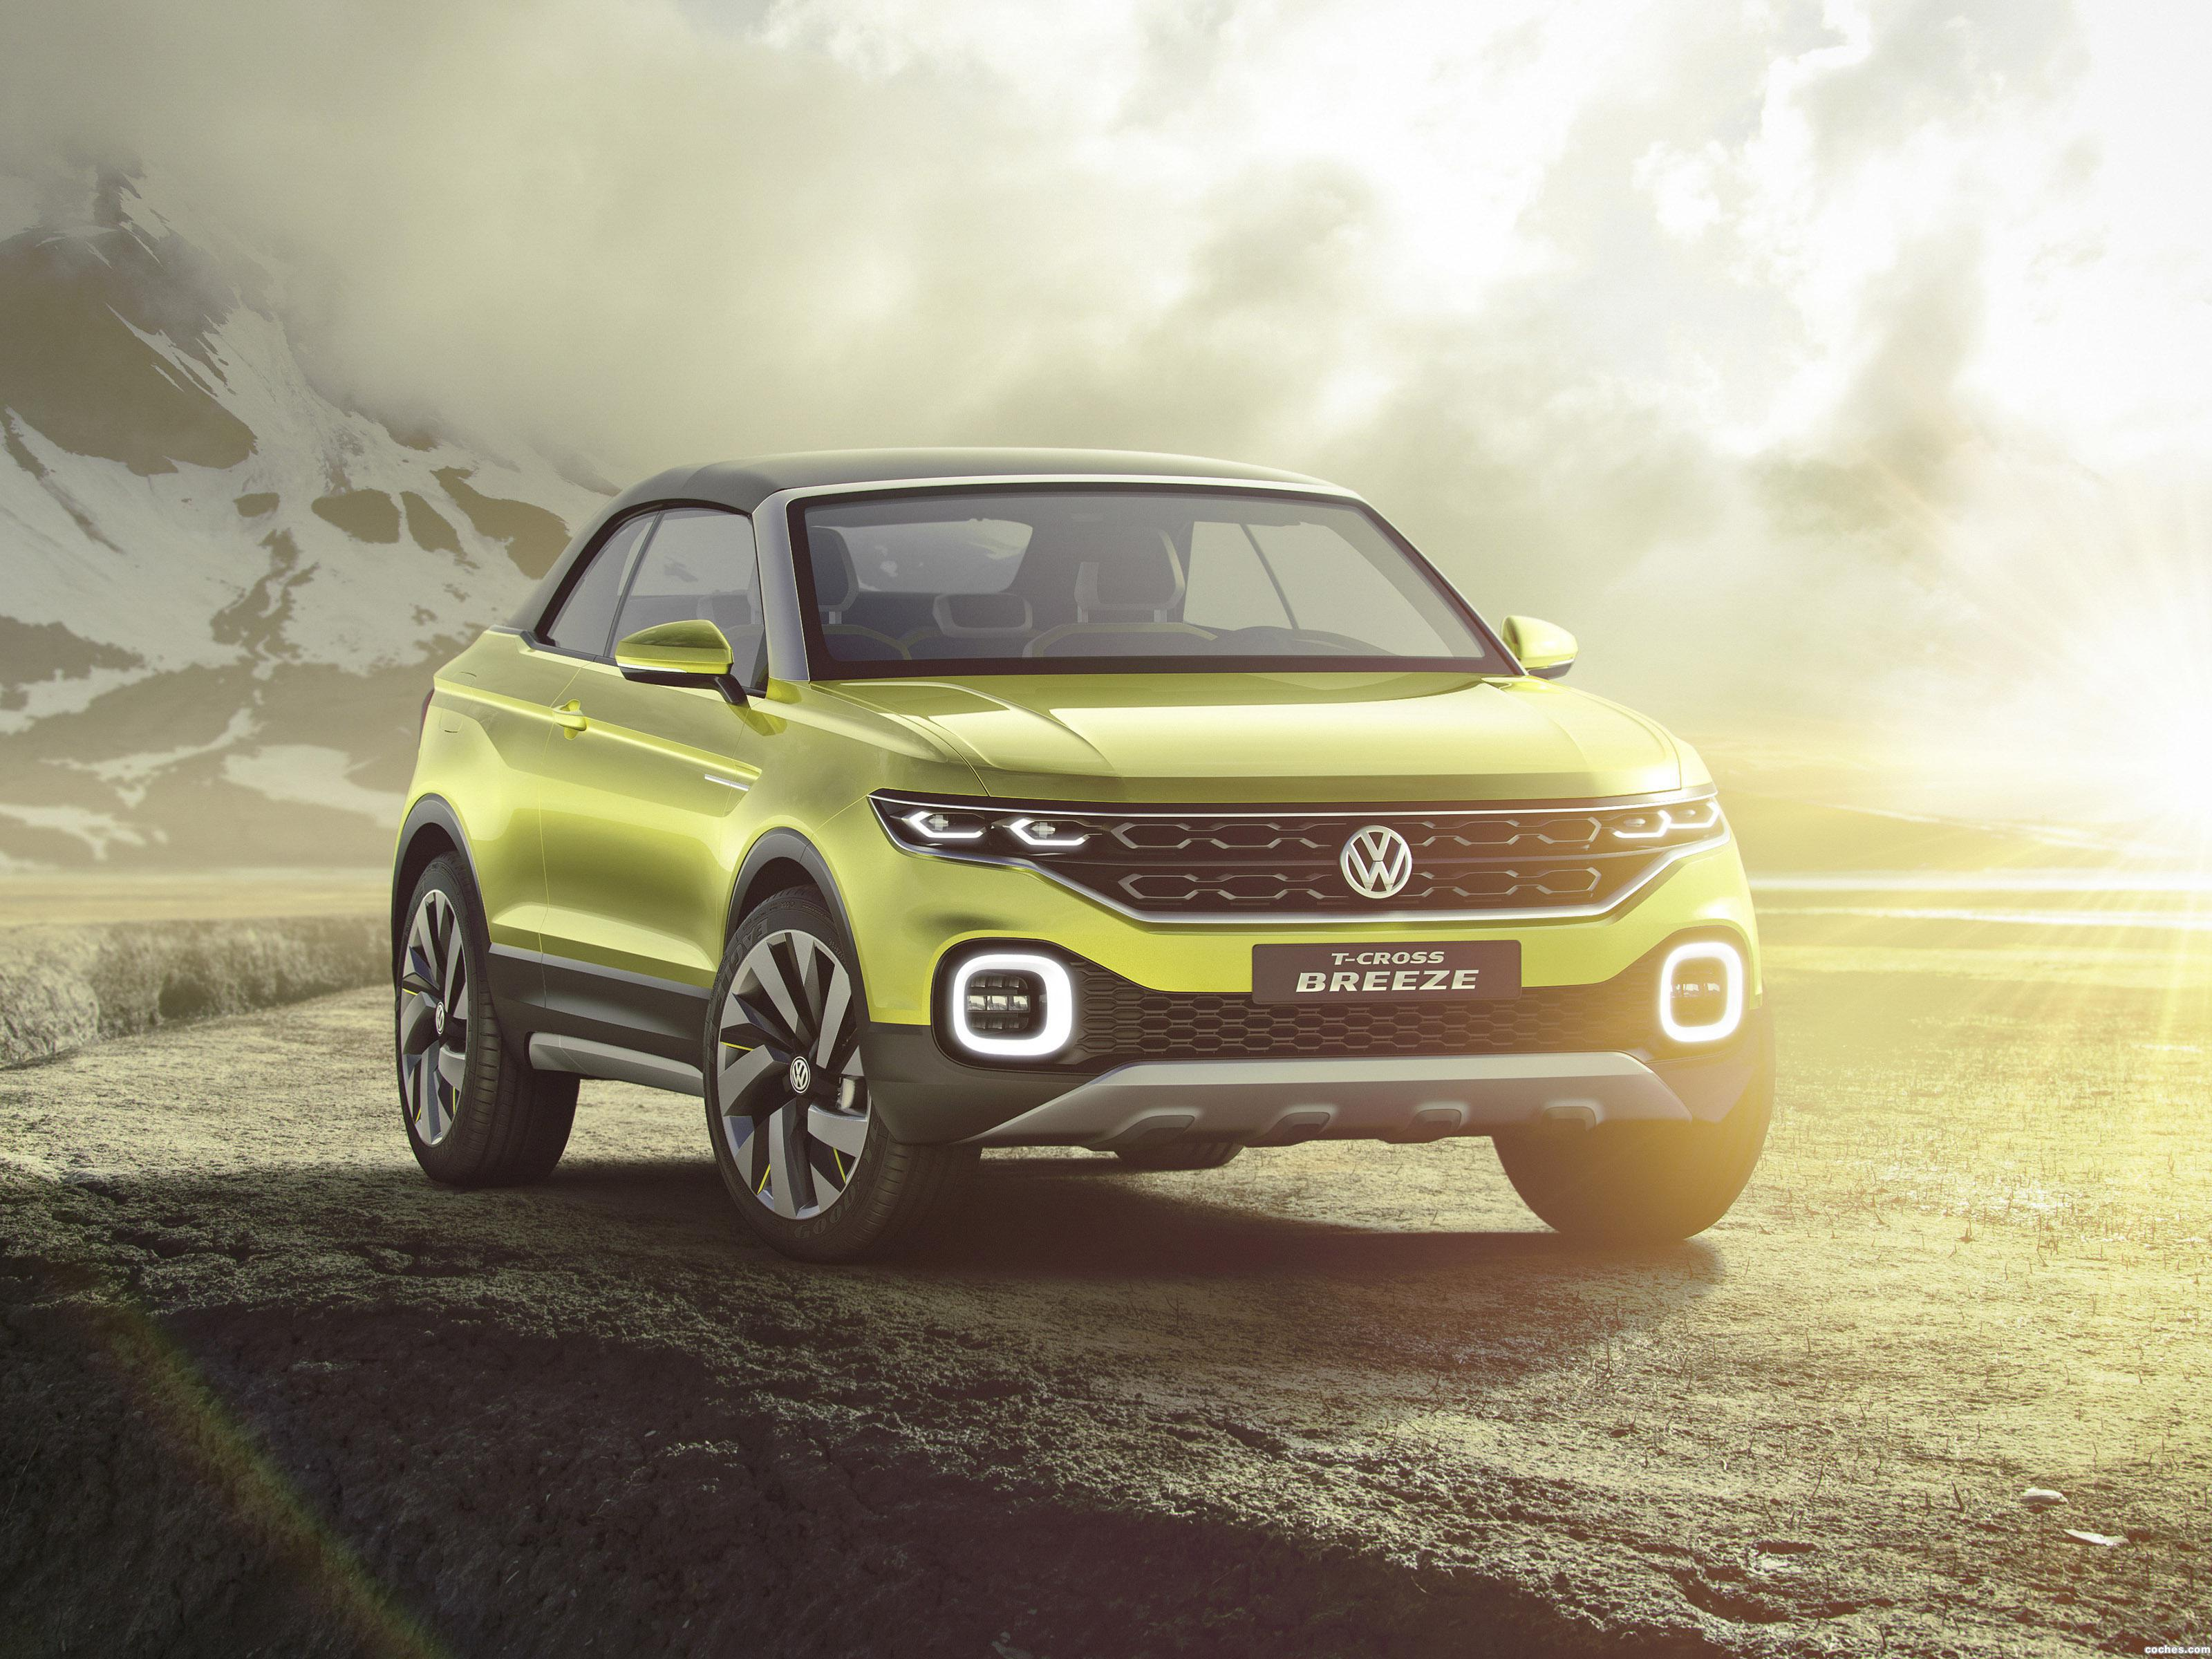 Foto 0 de Volkswagen T Cross Breeze Concept